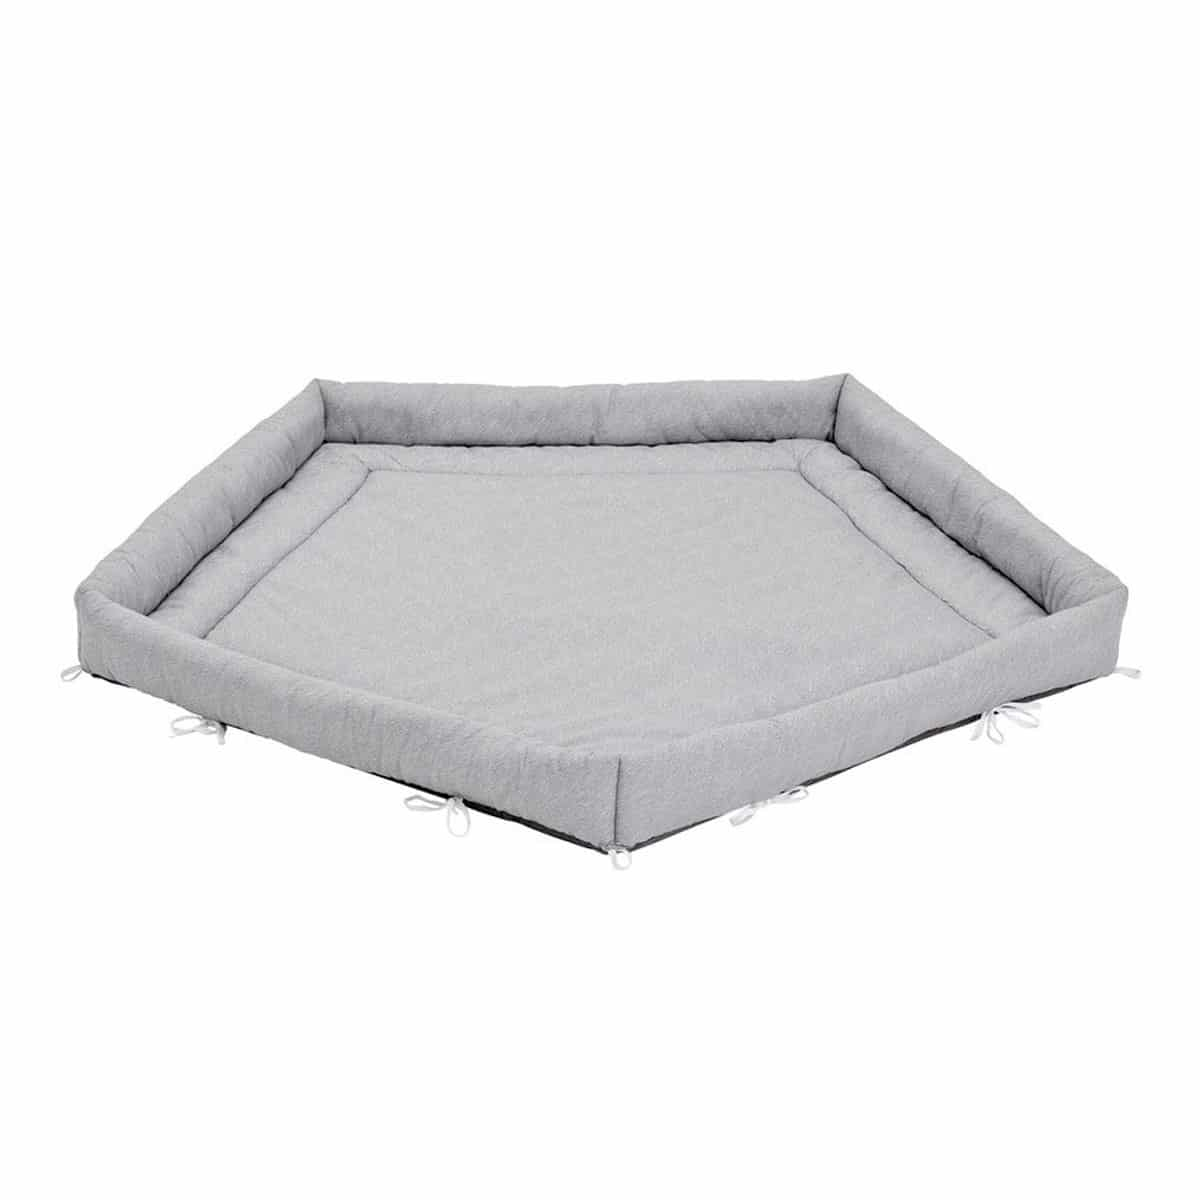 Venture All Stars VUE removable fitted mat in grey